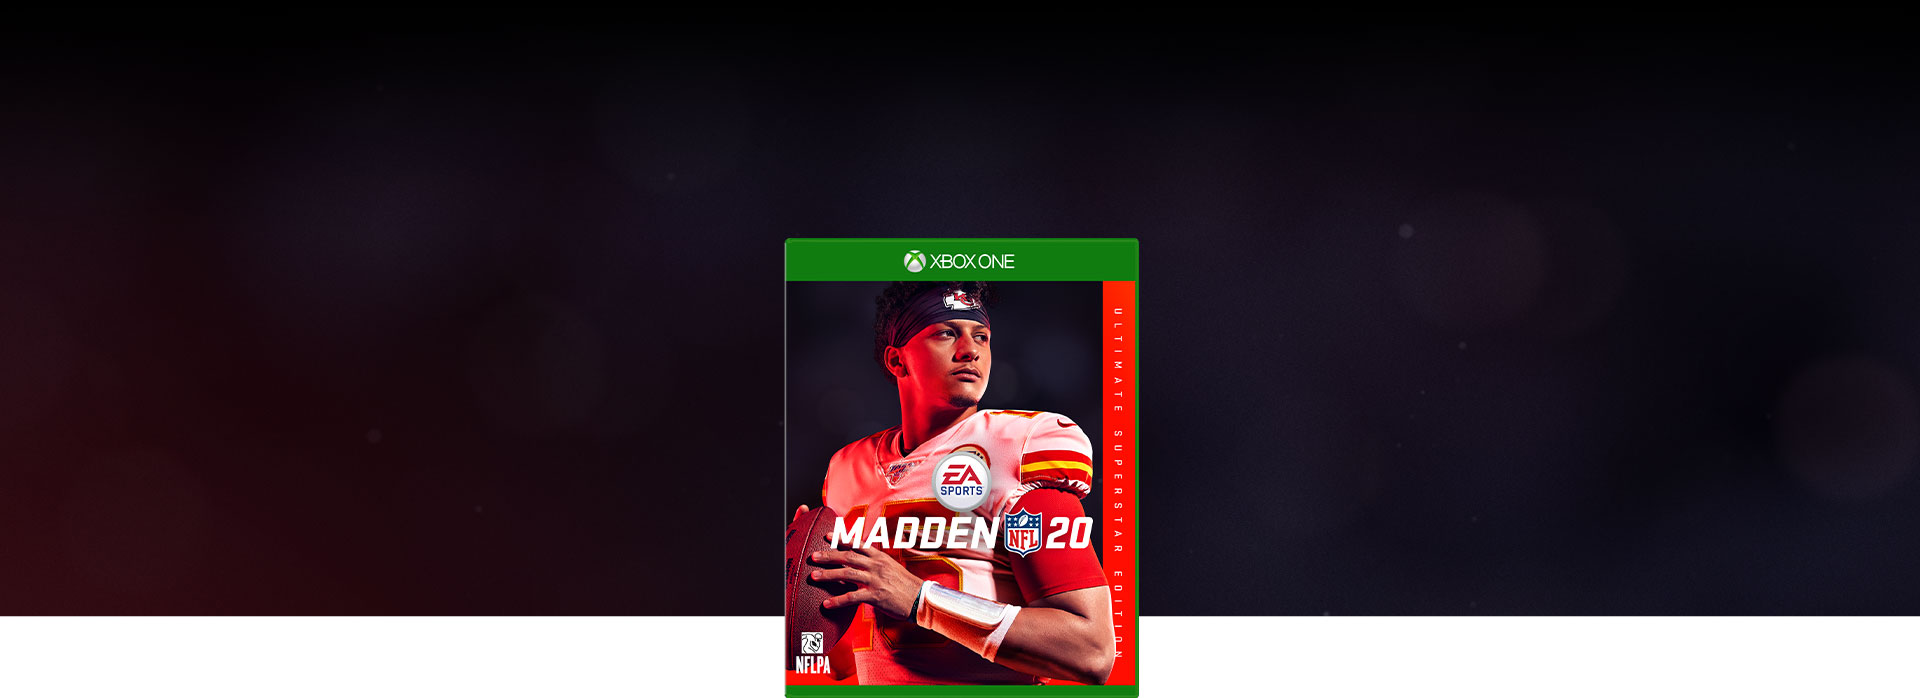 Madden NFL 20 boxshot, black to red faded background